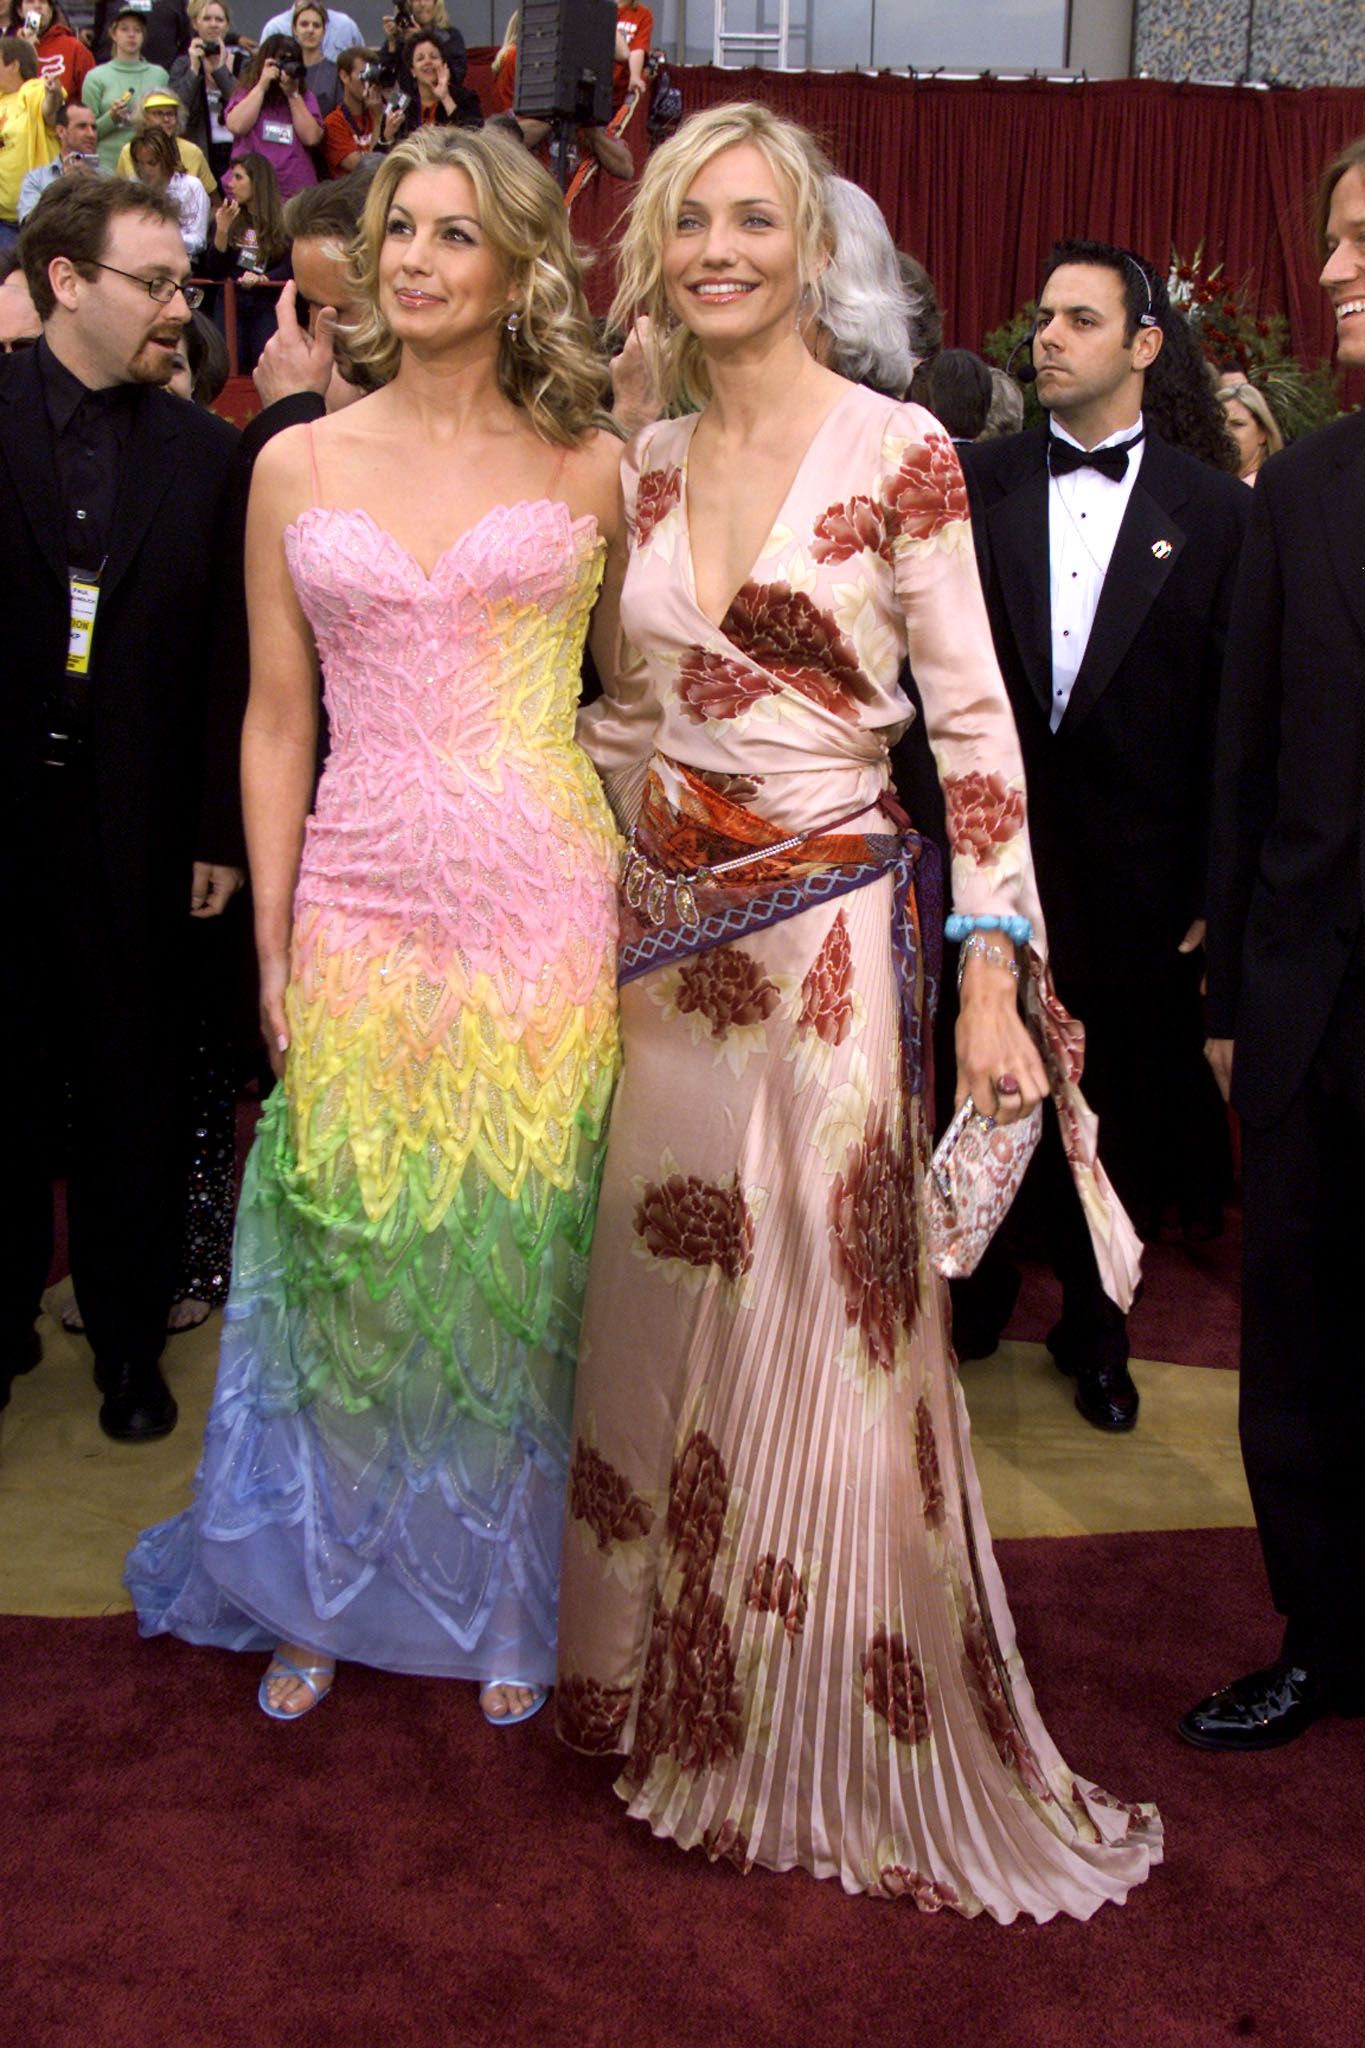 Singer Faith Hill (L) and actress and presenter Cameron Diaz arrive at the 74th annual Academy Awards March 24, 2002 in Hollywood. Hill will perform Best Song nominee